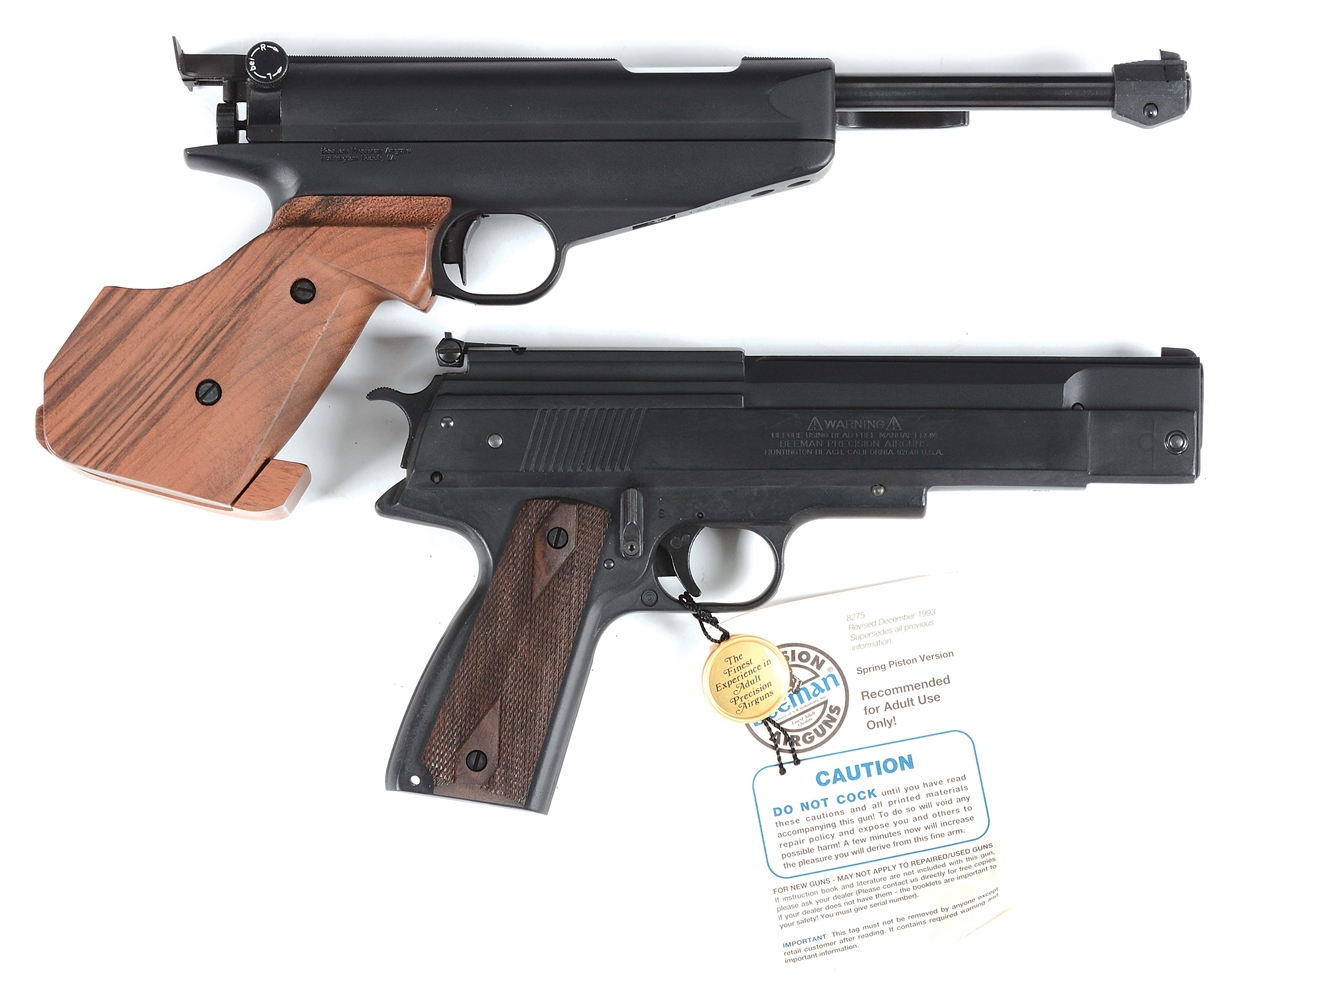 Lot of 2: Feinwerkbau M65 and Beeman P1 Magnum Air Pistols.